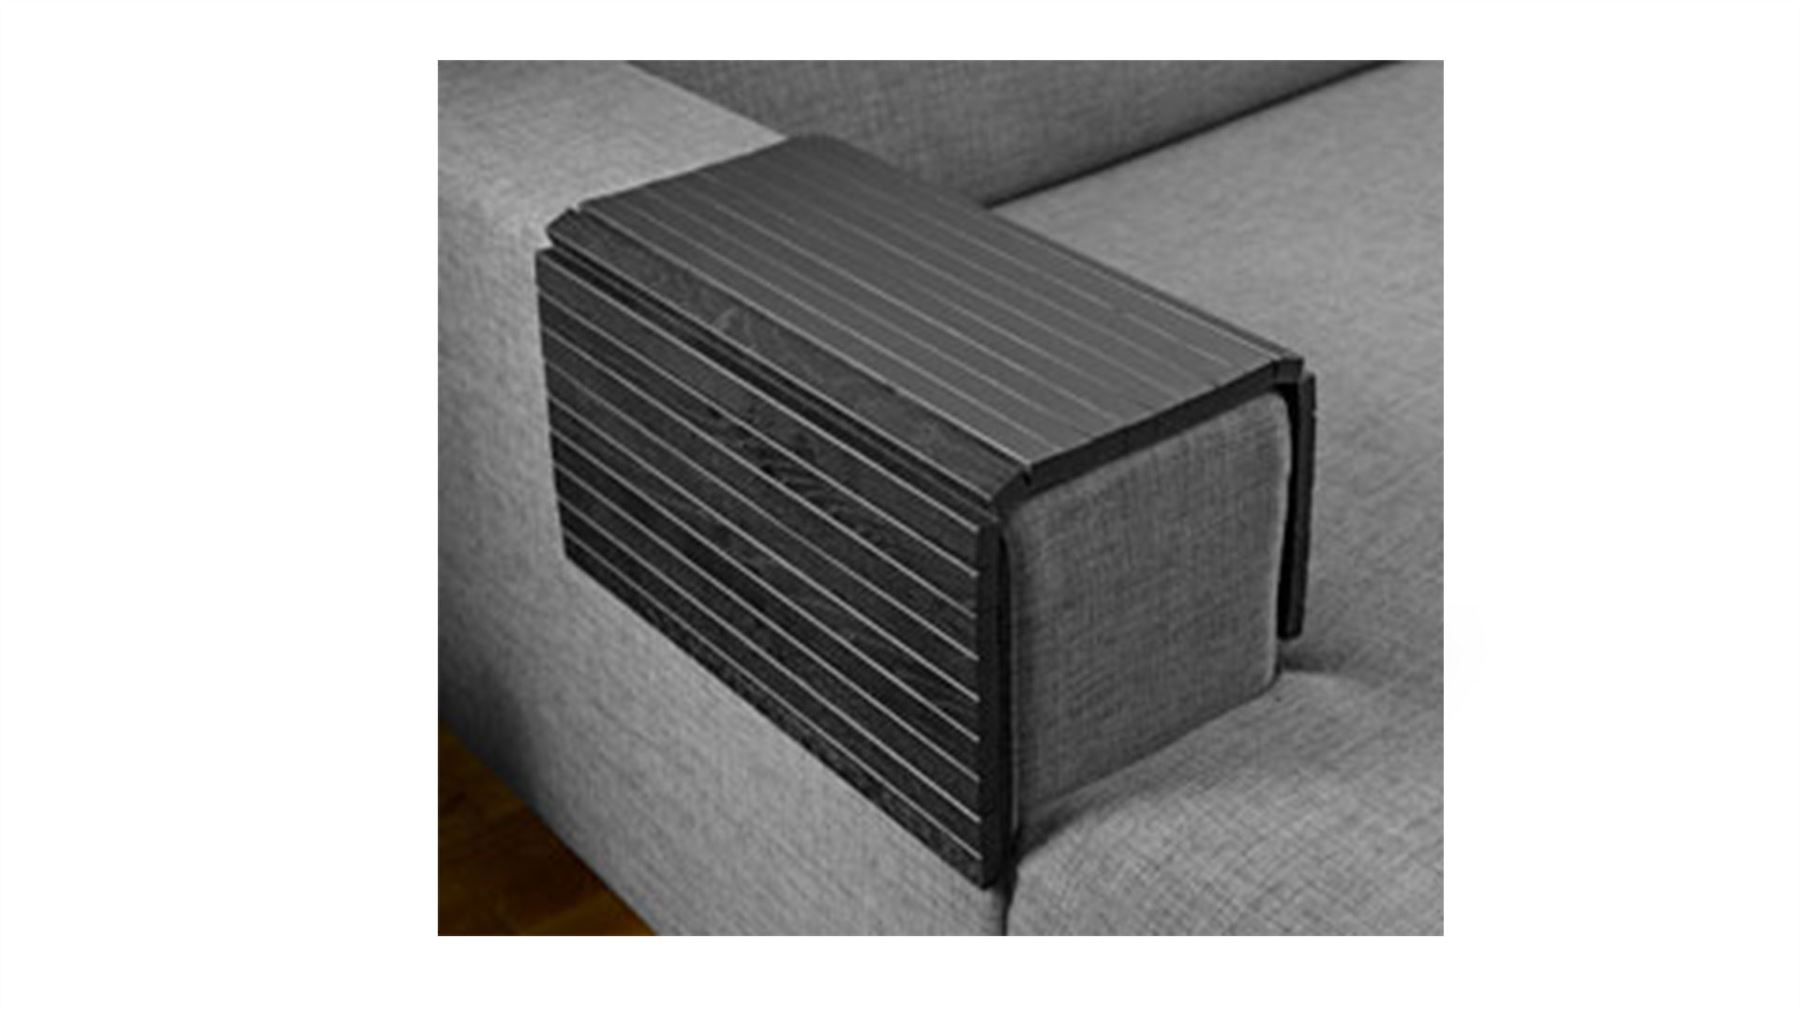 sofa arm rest tray small black bed ikea rodeby armrest table